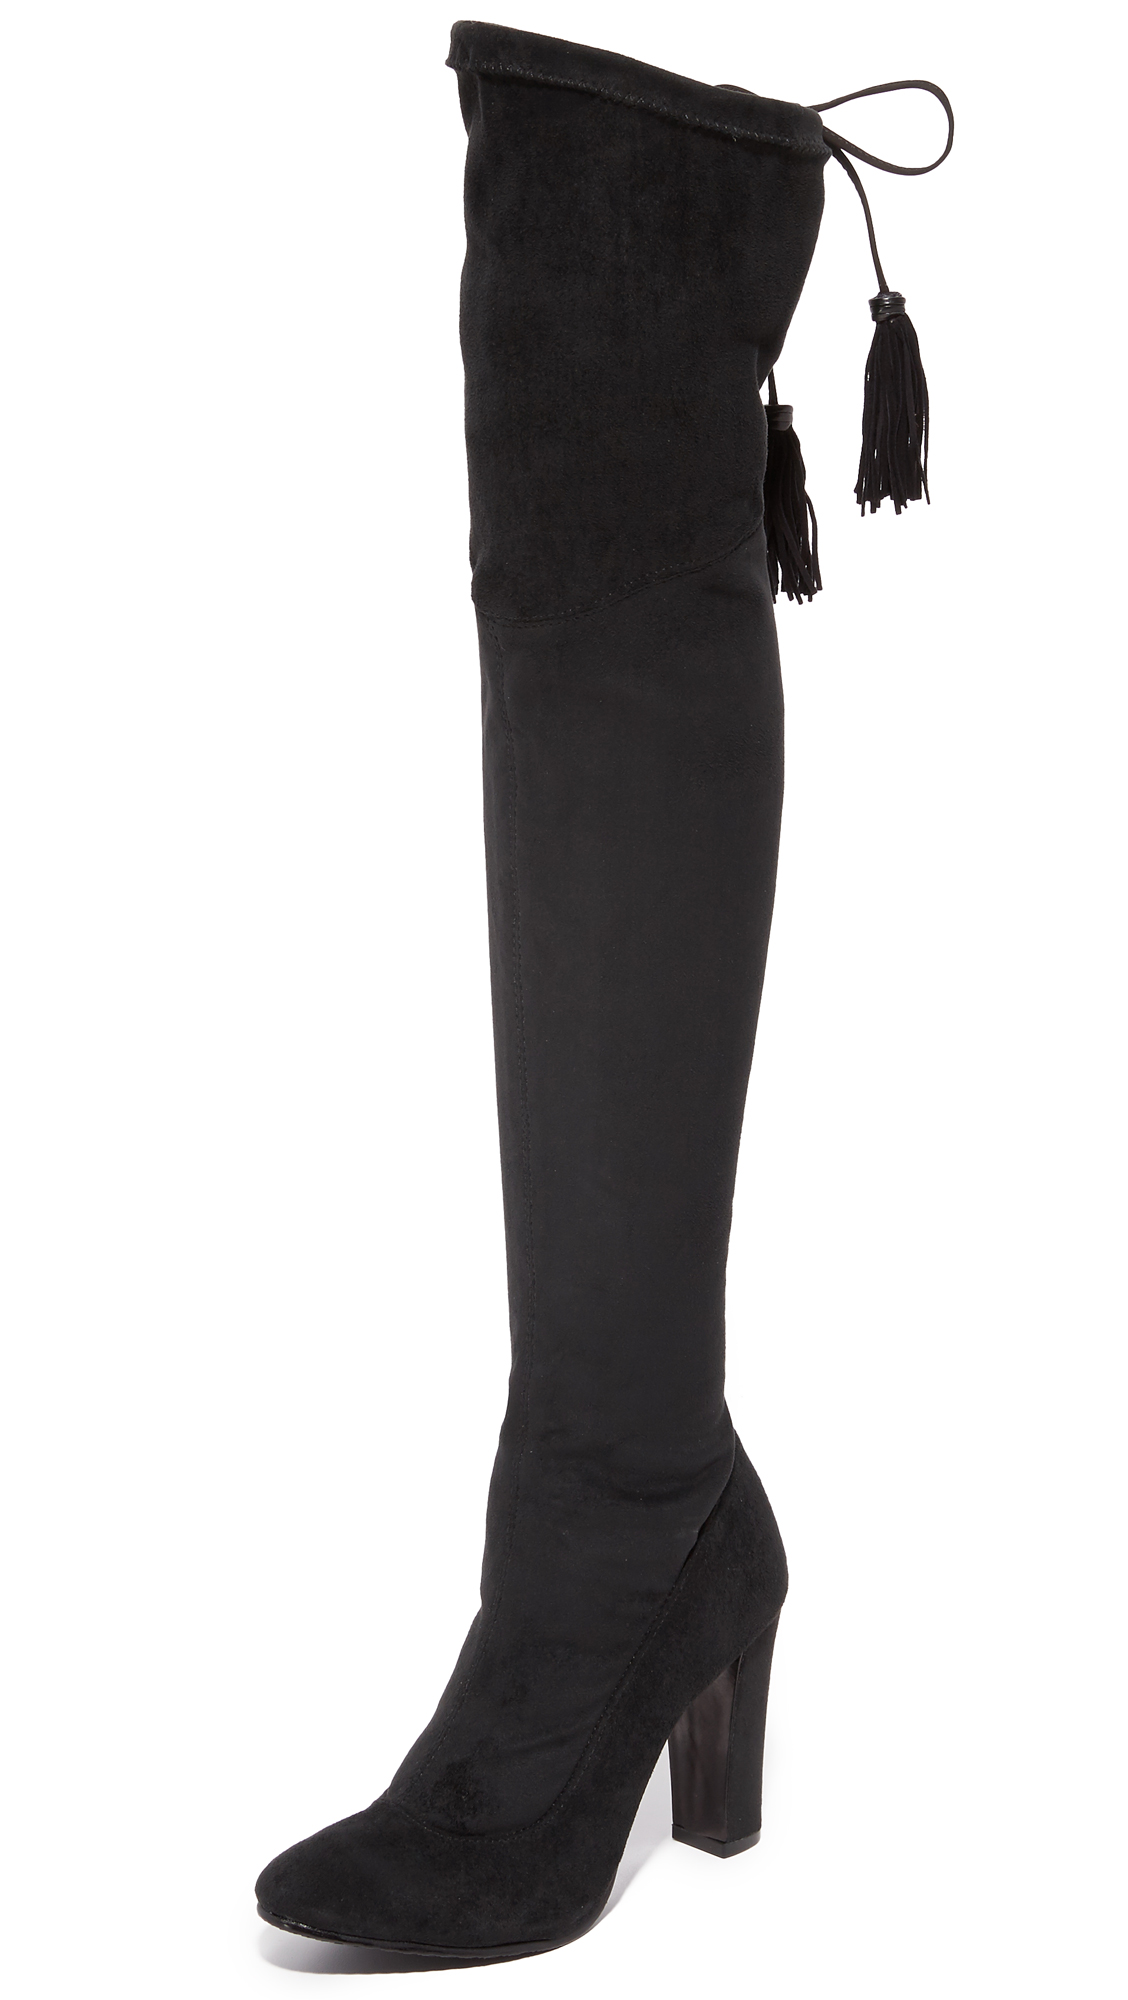 Beau Over the Knee Boots